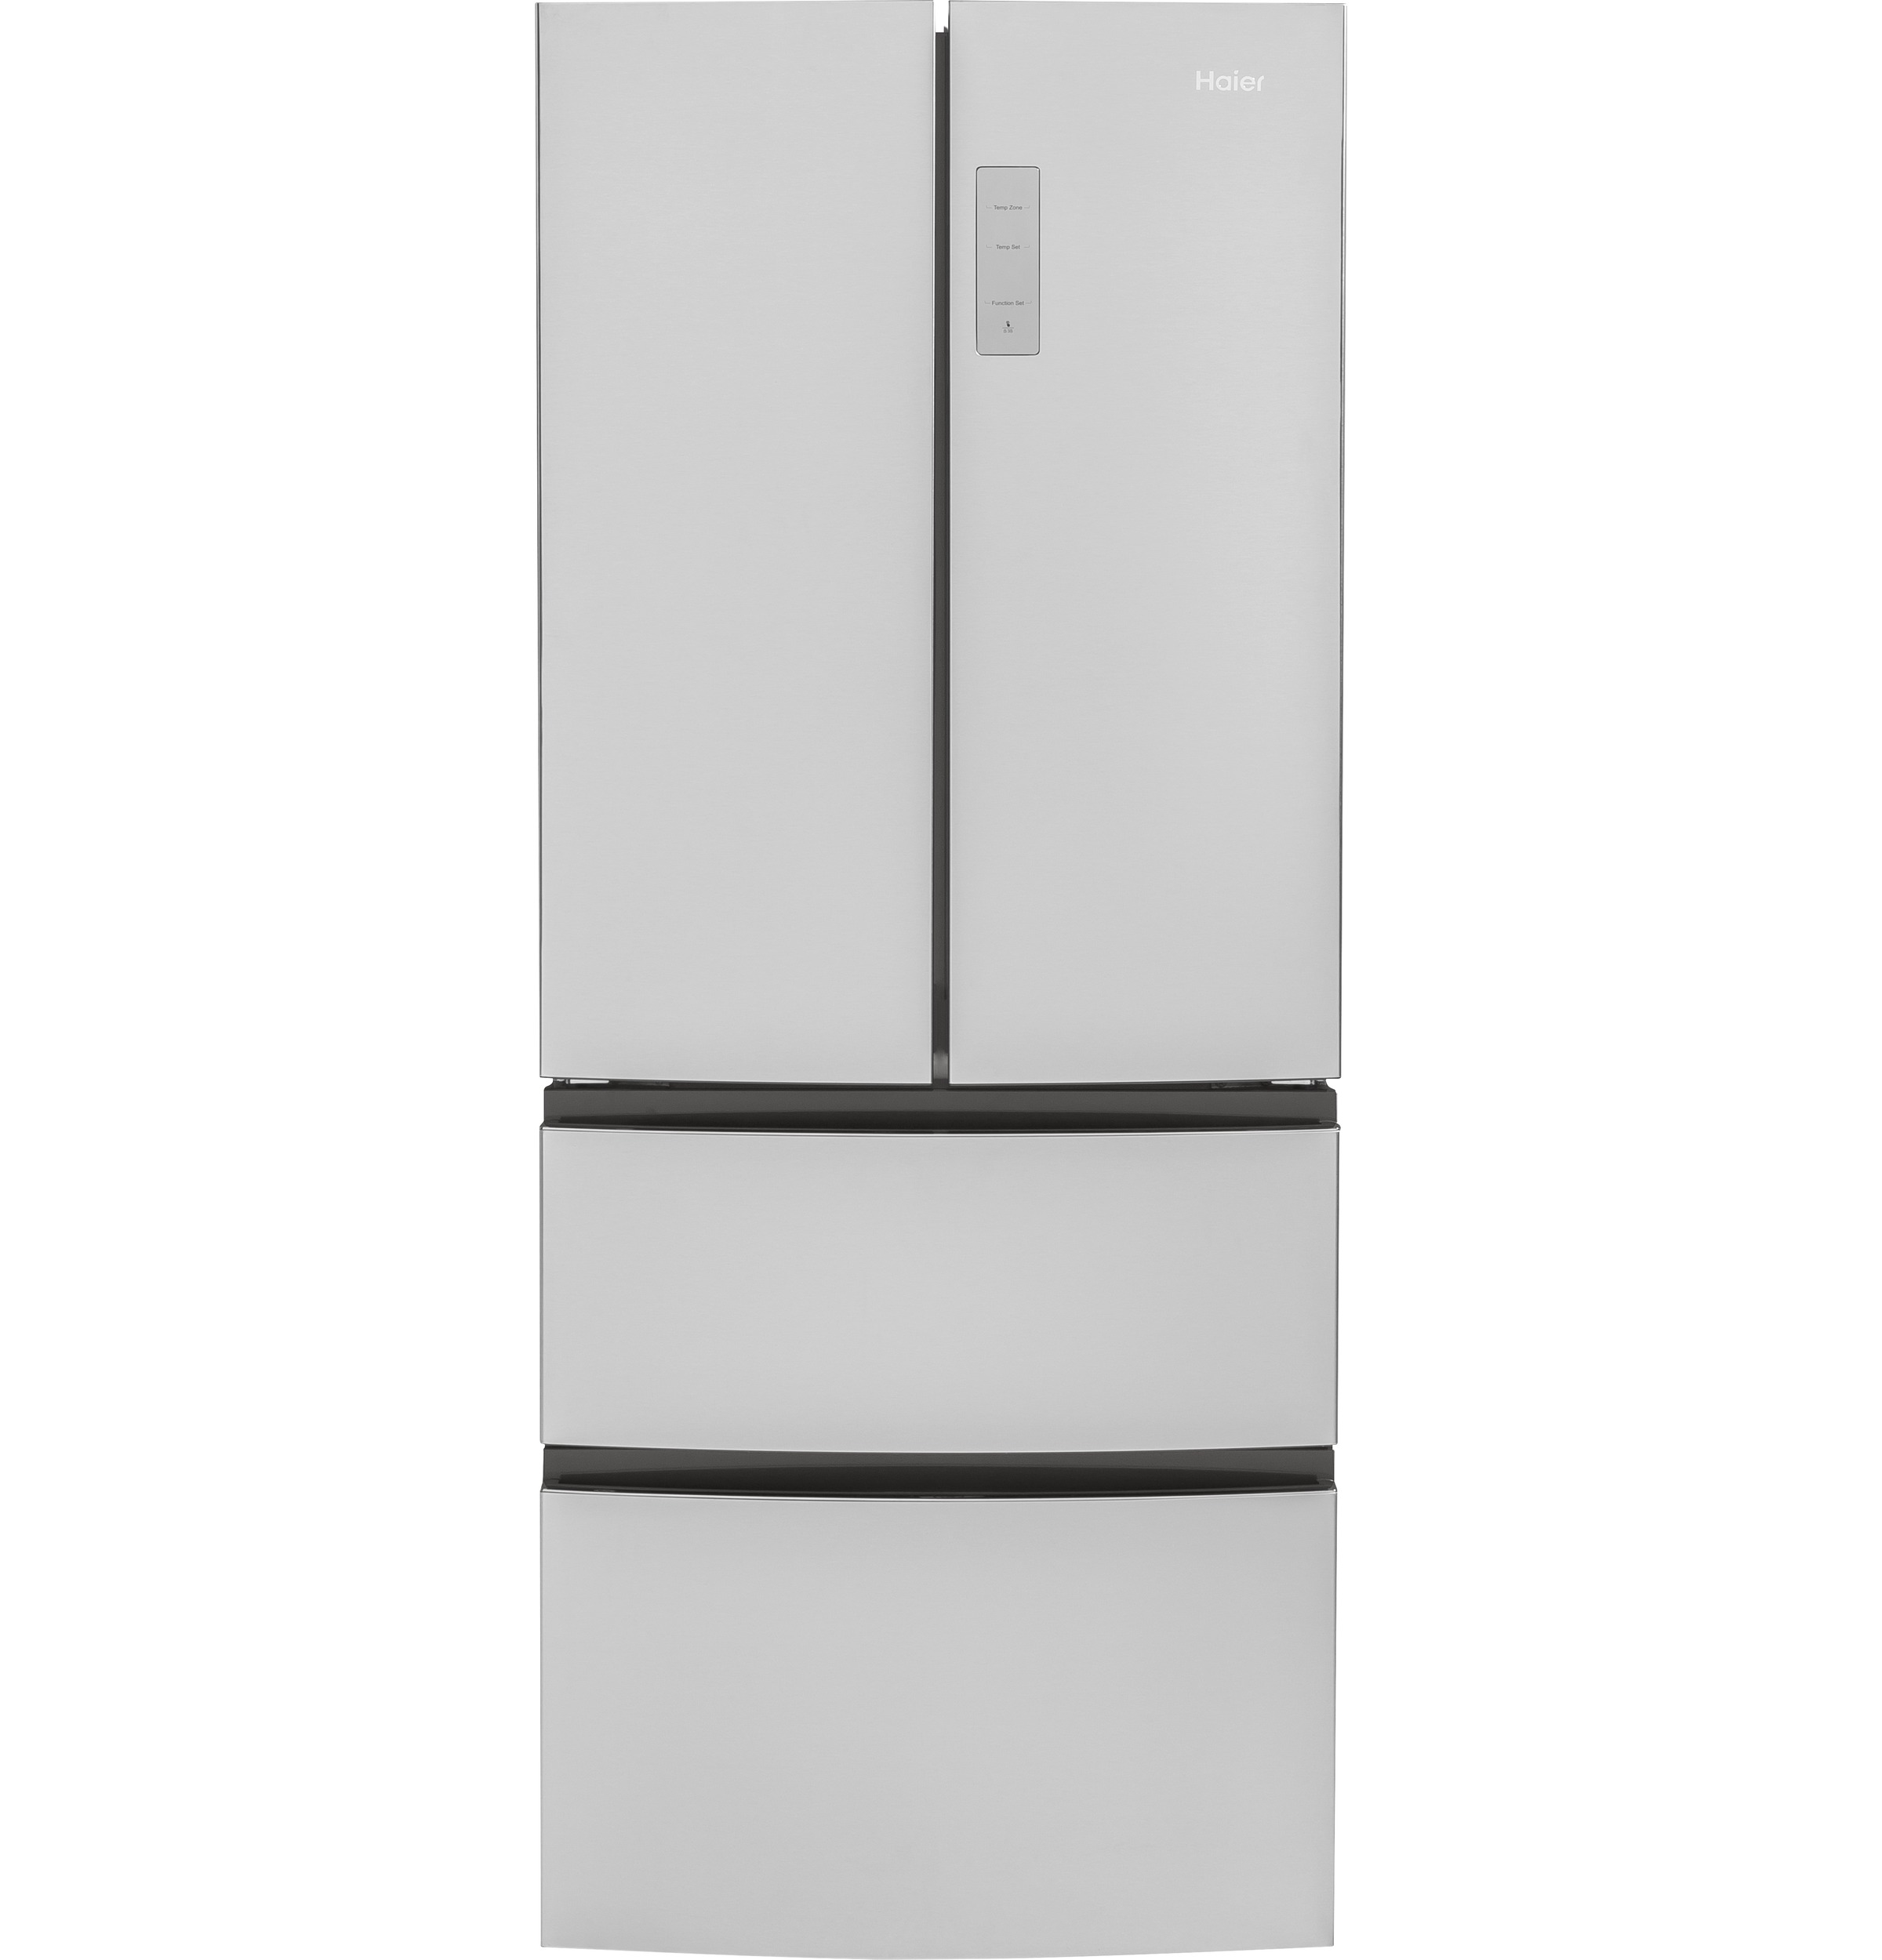 Haier 15 Cu. Ft. French Door Refrigerator